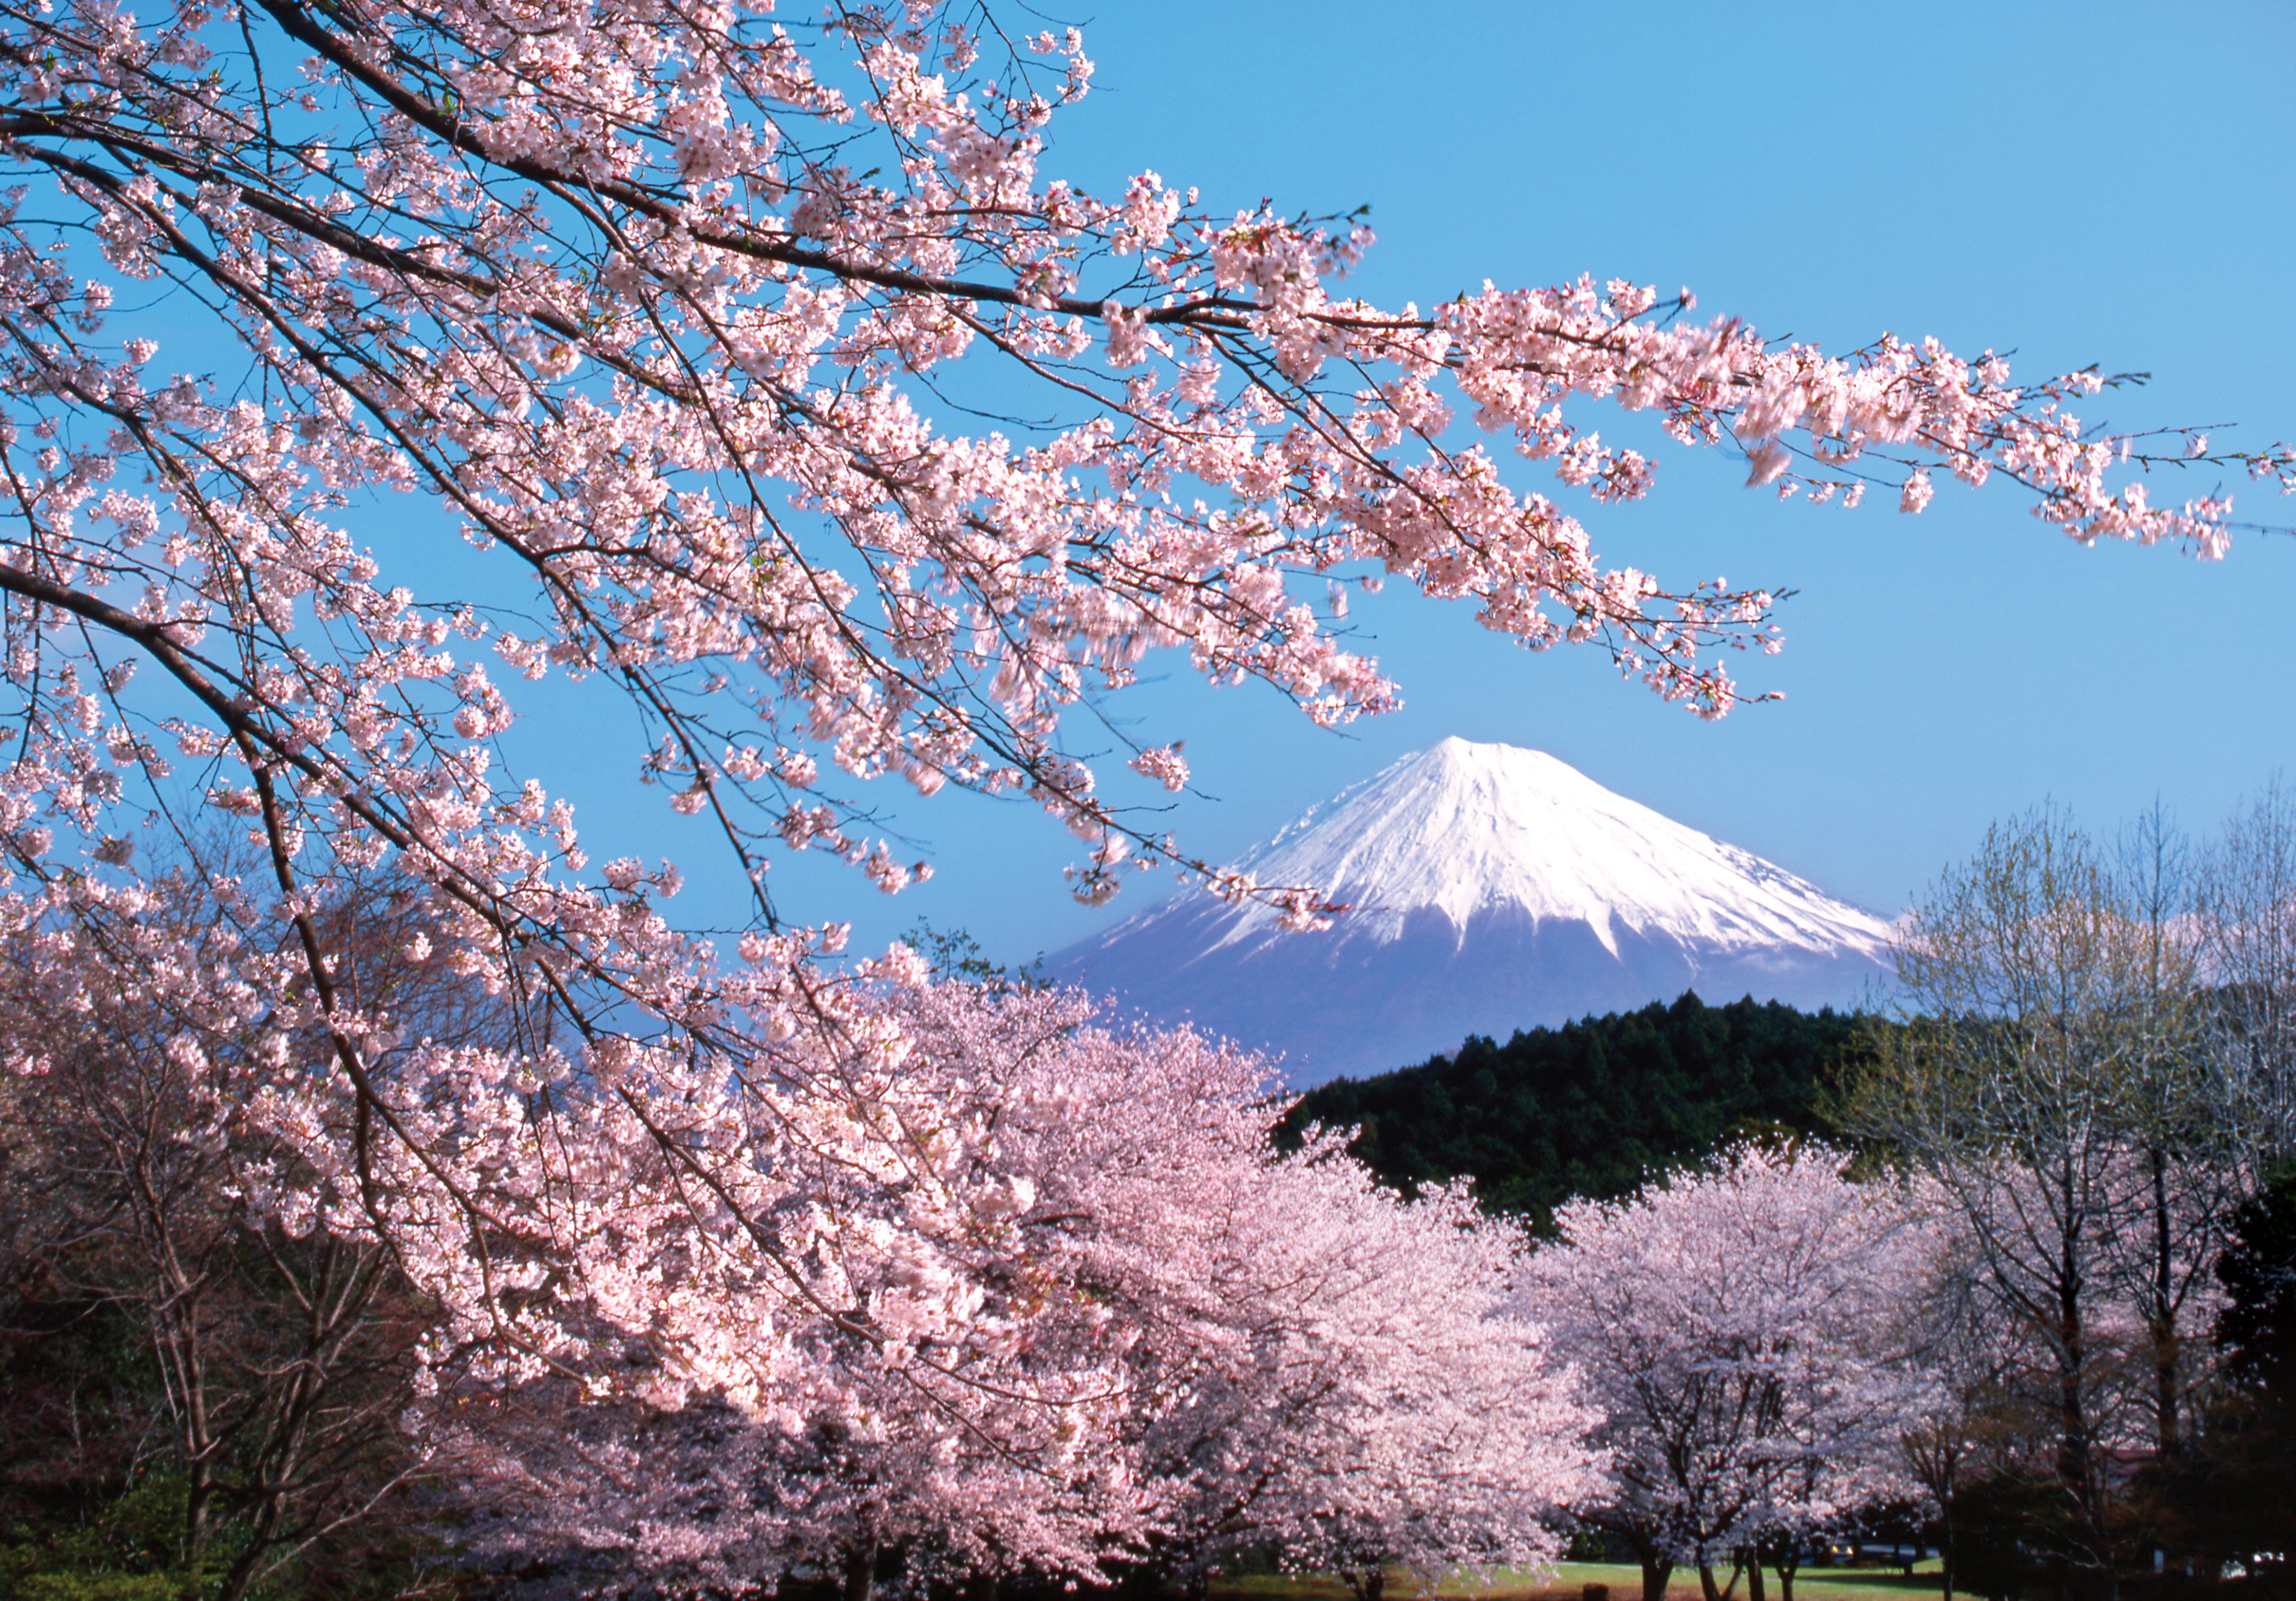 Cherry blossoms in front of Mount Fuji